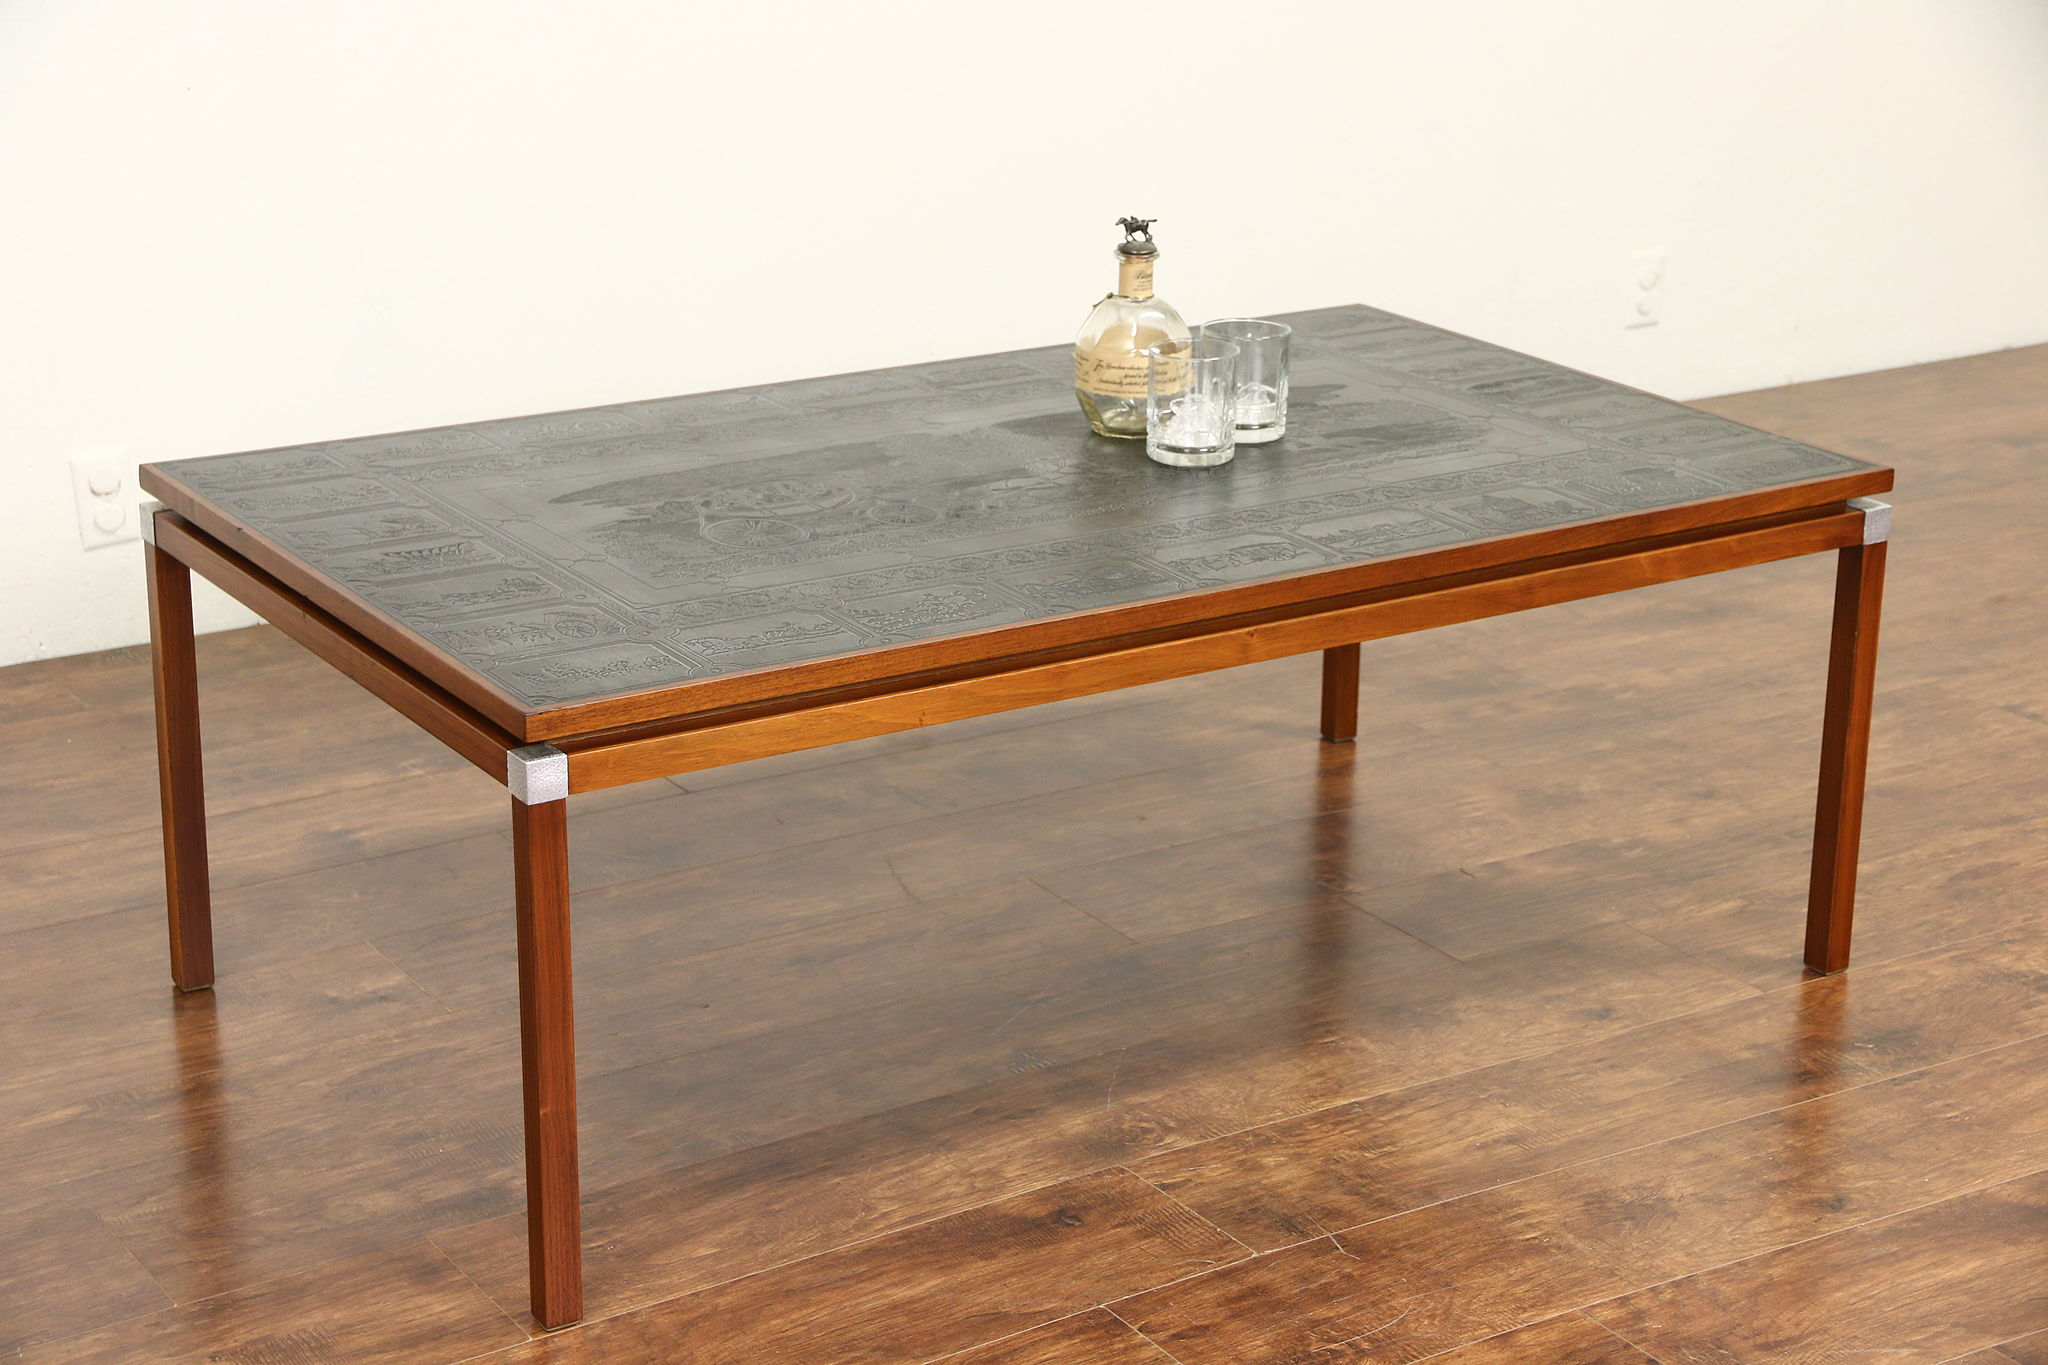 SOLD Midcentury Danish Modern 1960 Vintage Coffee Table Equine